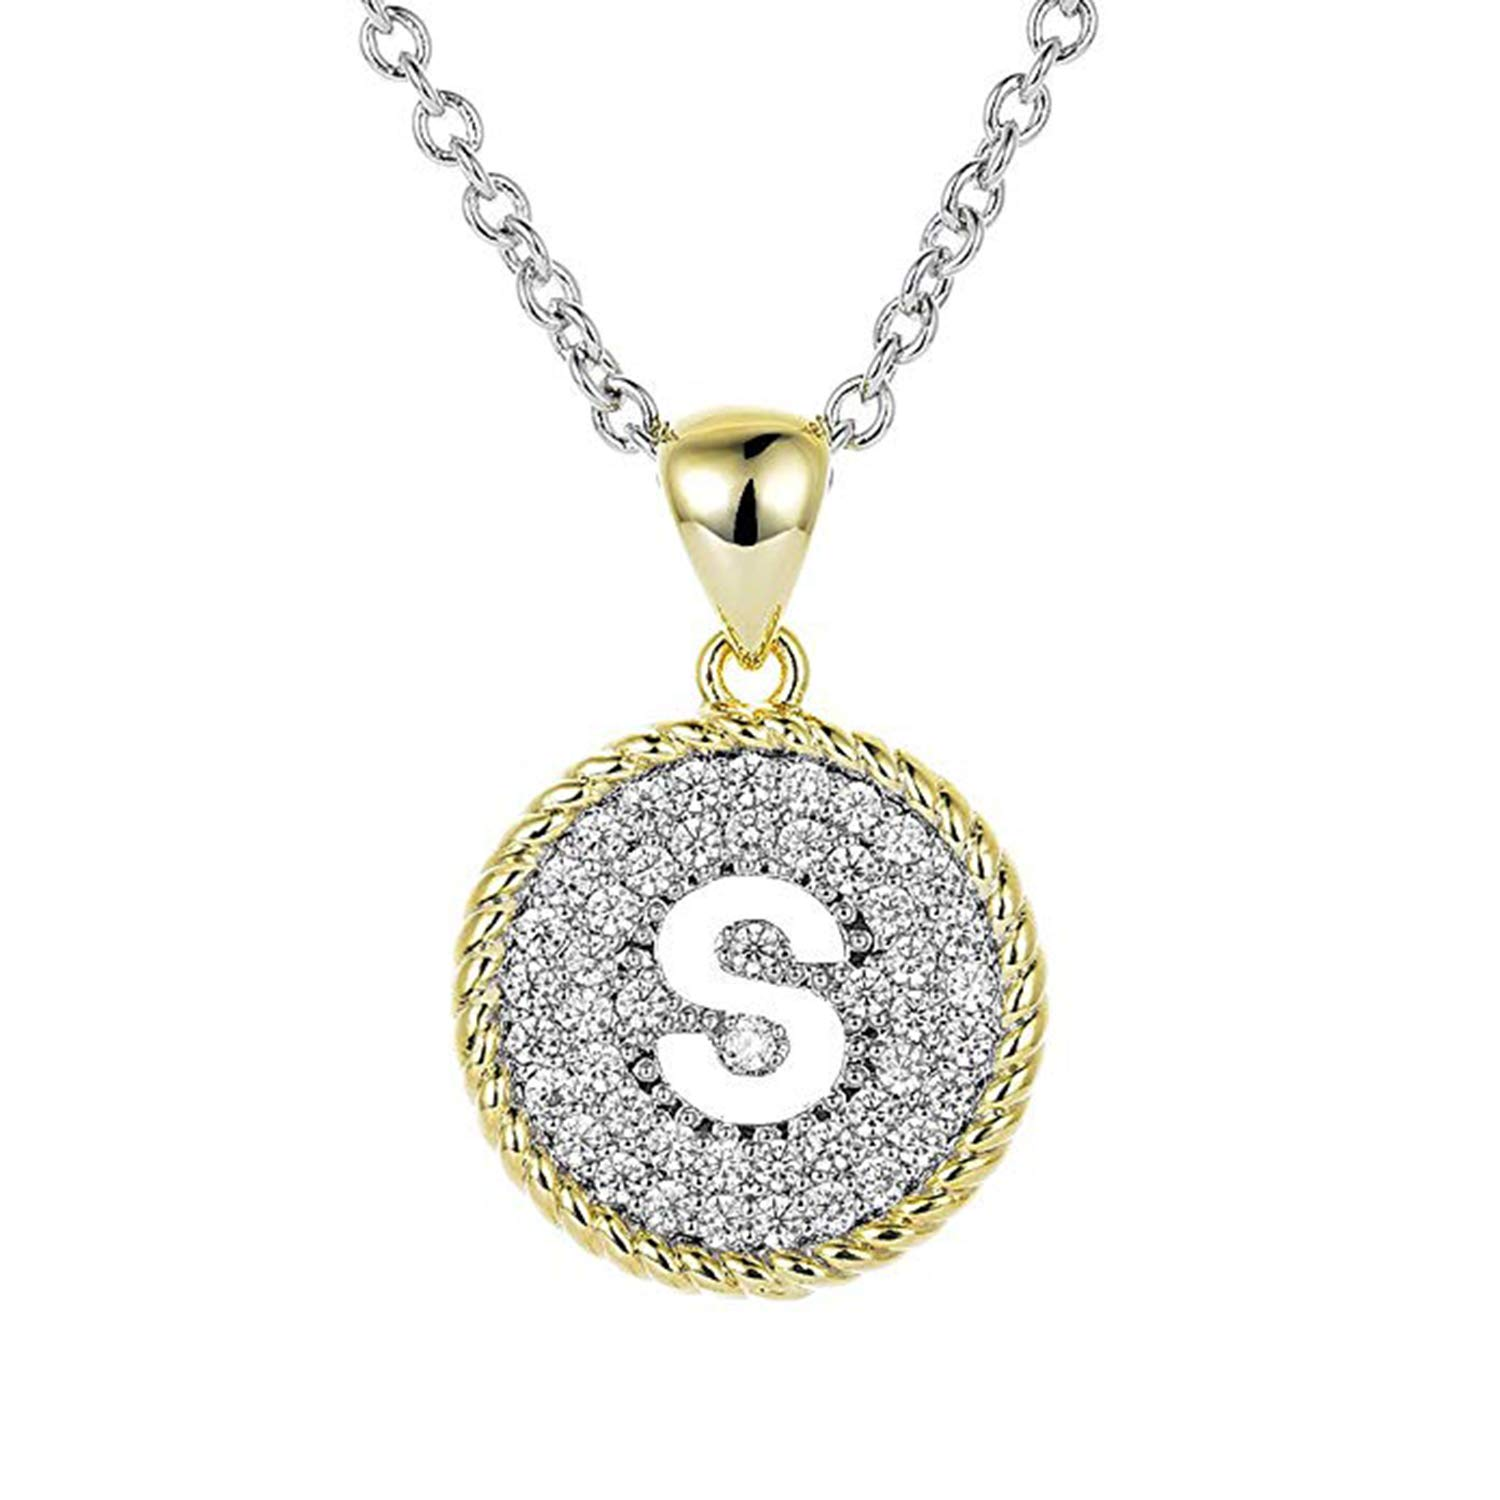 SJSilver Jewels 14K Gold Plated Simulated Diamond Studded S Initial Letter Pendant Jewelry